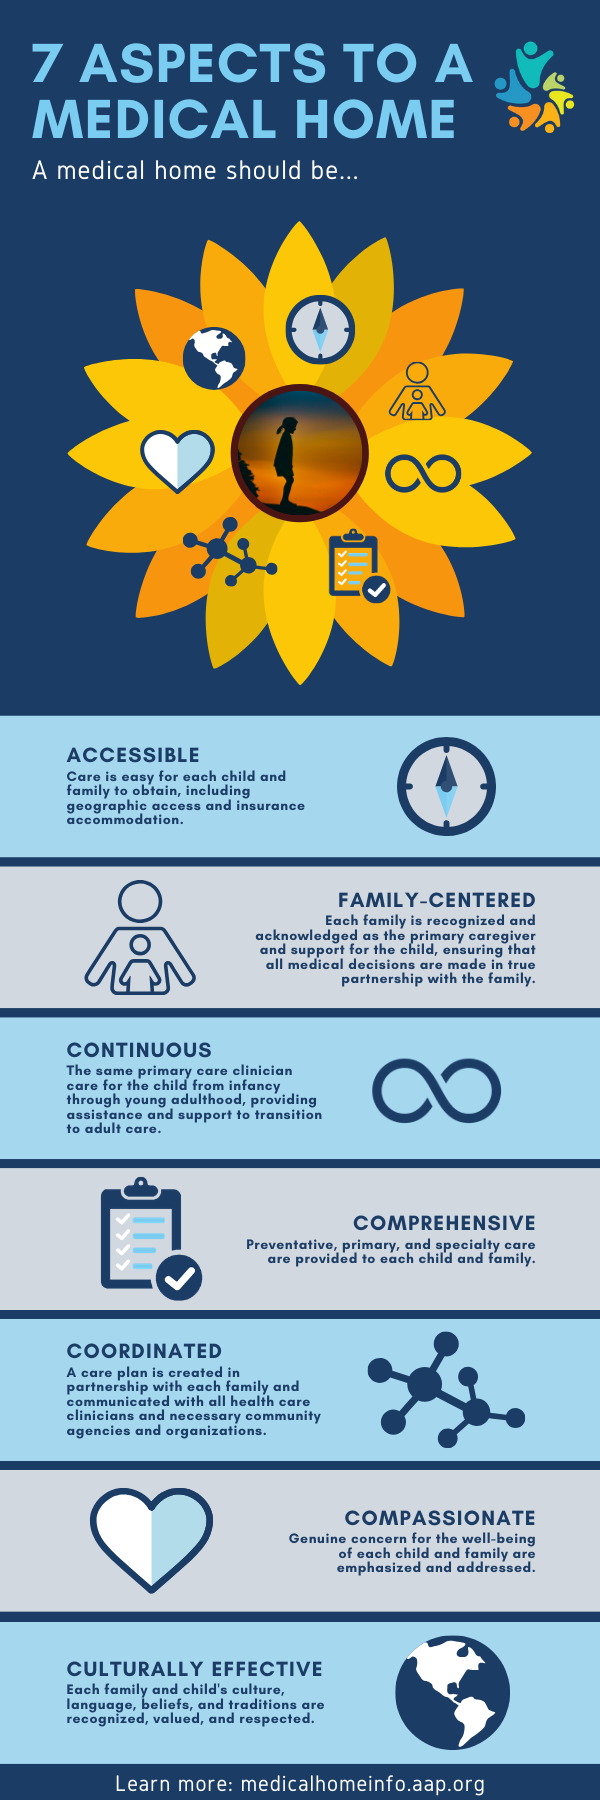 7 Aspects to a Medical Home - Infographic